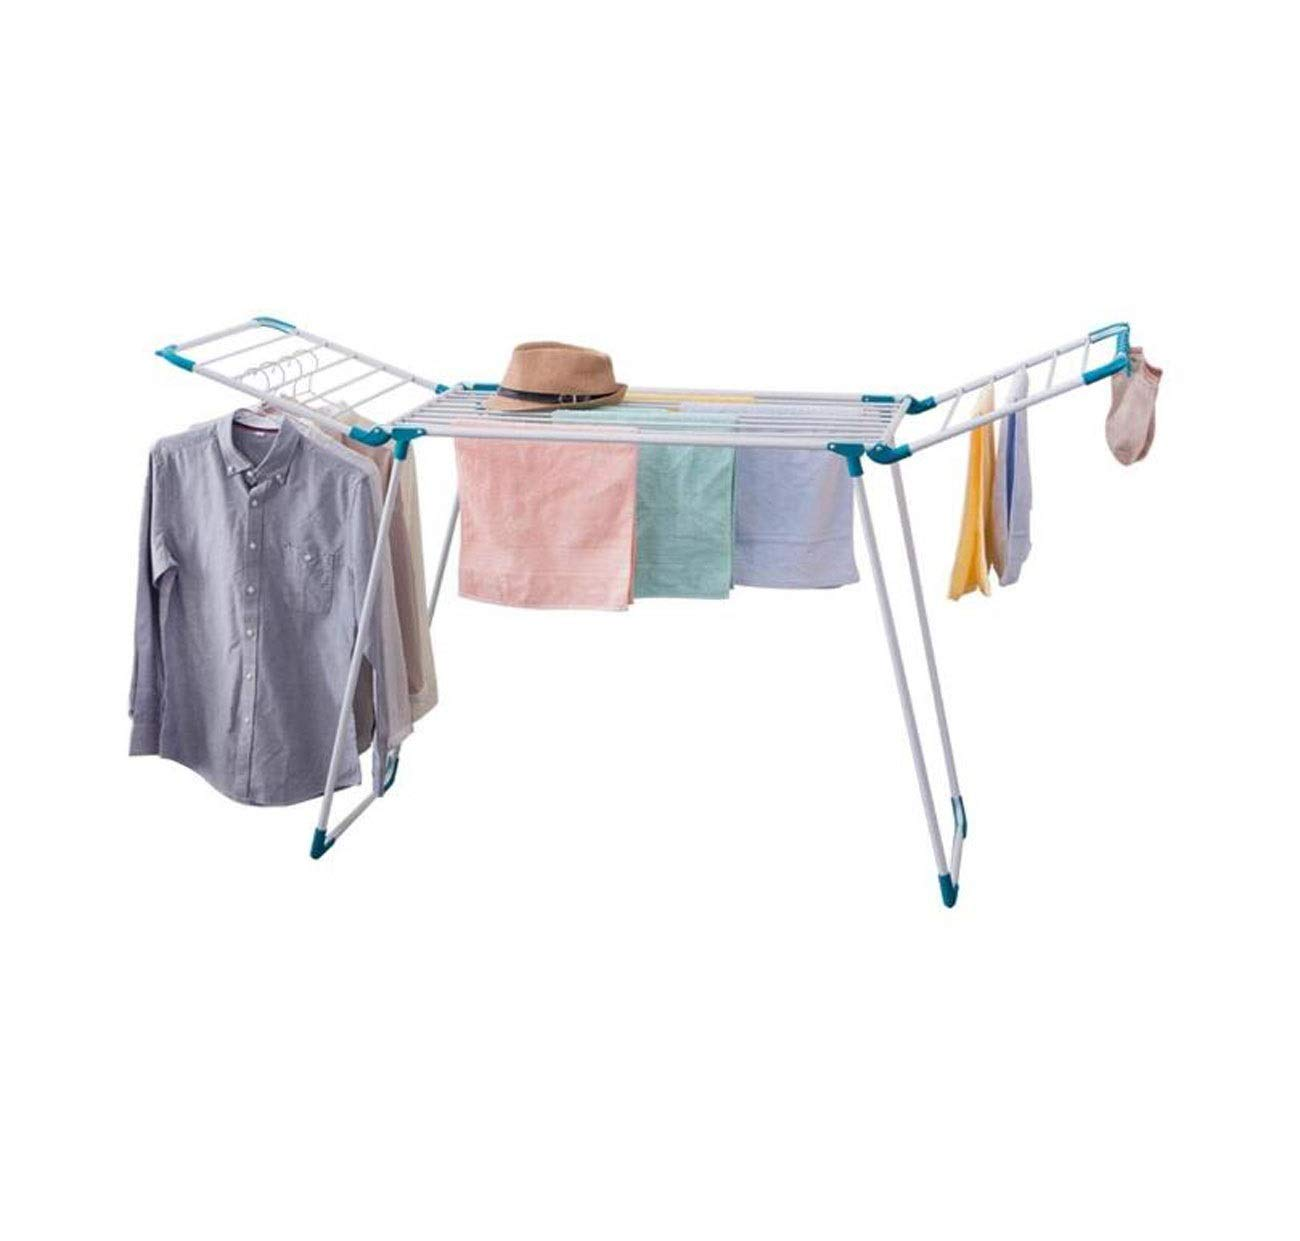 HYZLYJ Drying Rack, Drying Rack, Collapsible Airfoil Drying Rack, Balcony, Floor Drying Rack, Household Drying Rack, Suitable for Indoor Or Outdoor Use